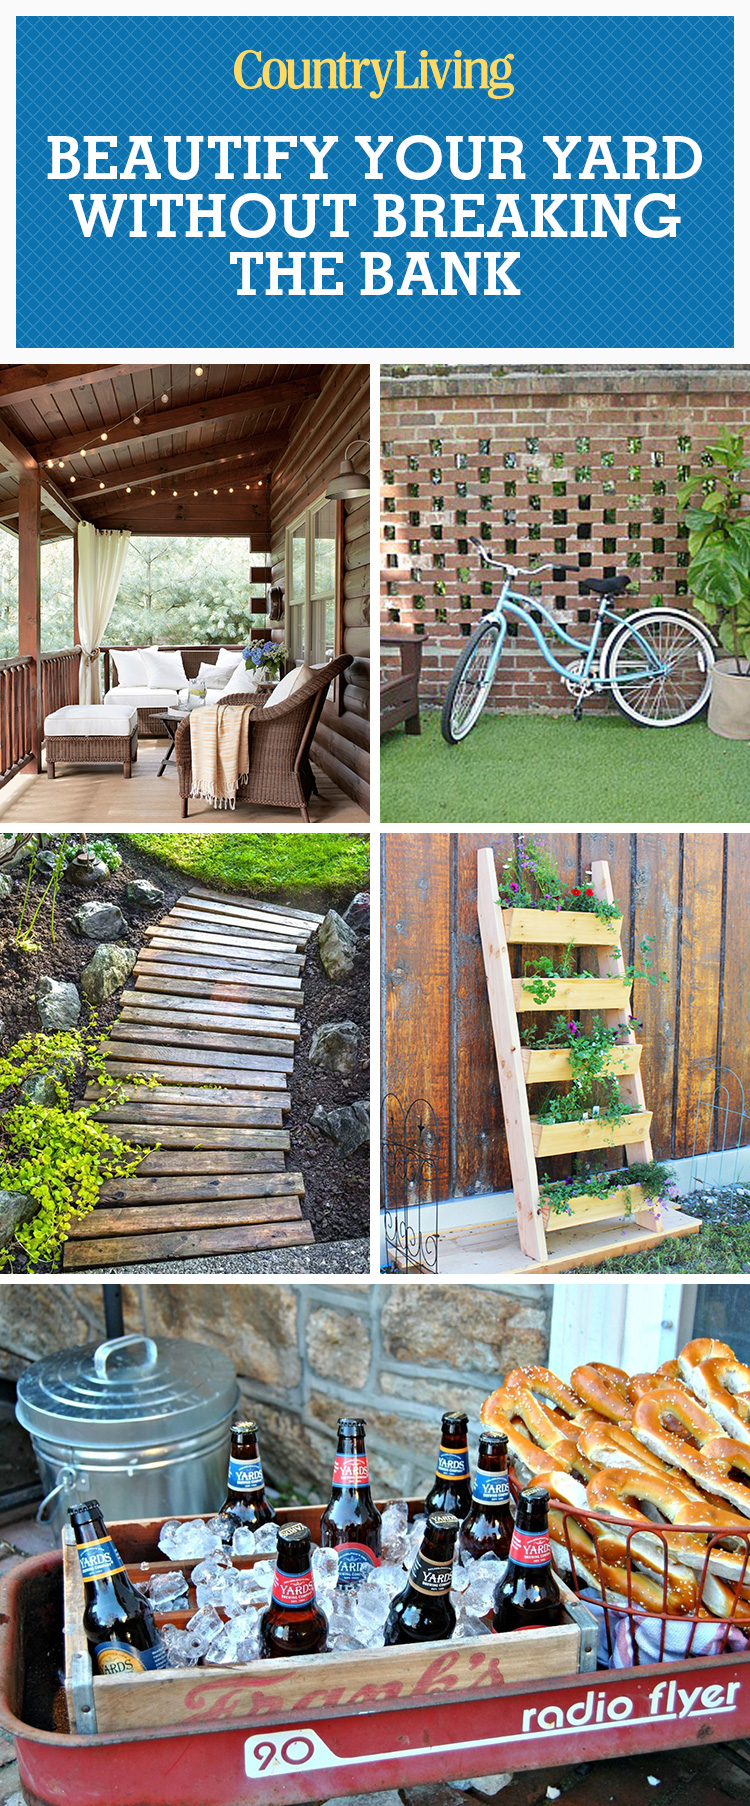 54 diy backyard design ideas diy backyard decor tips - Outdoor Home Decor Ideas